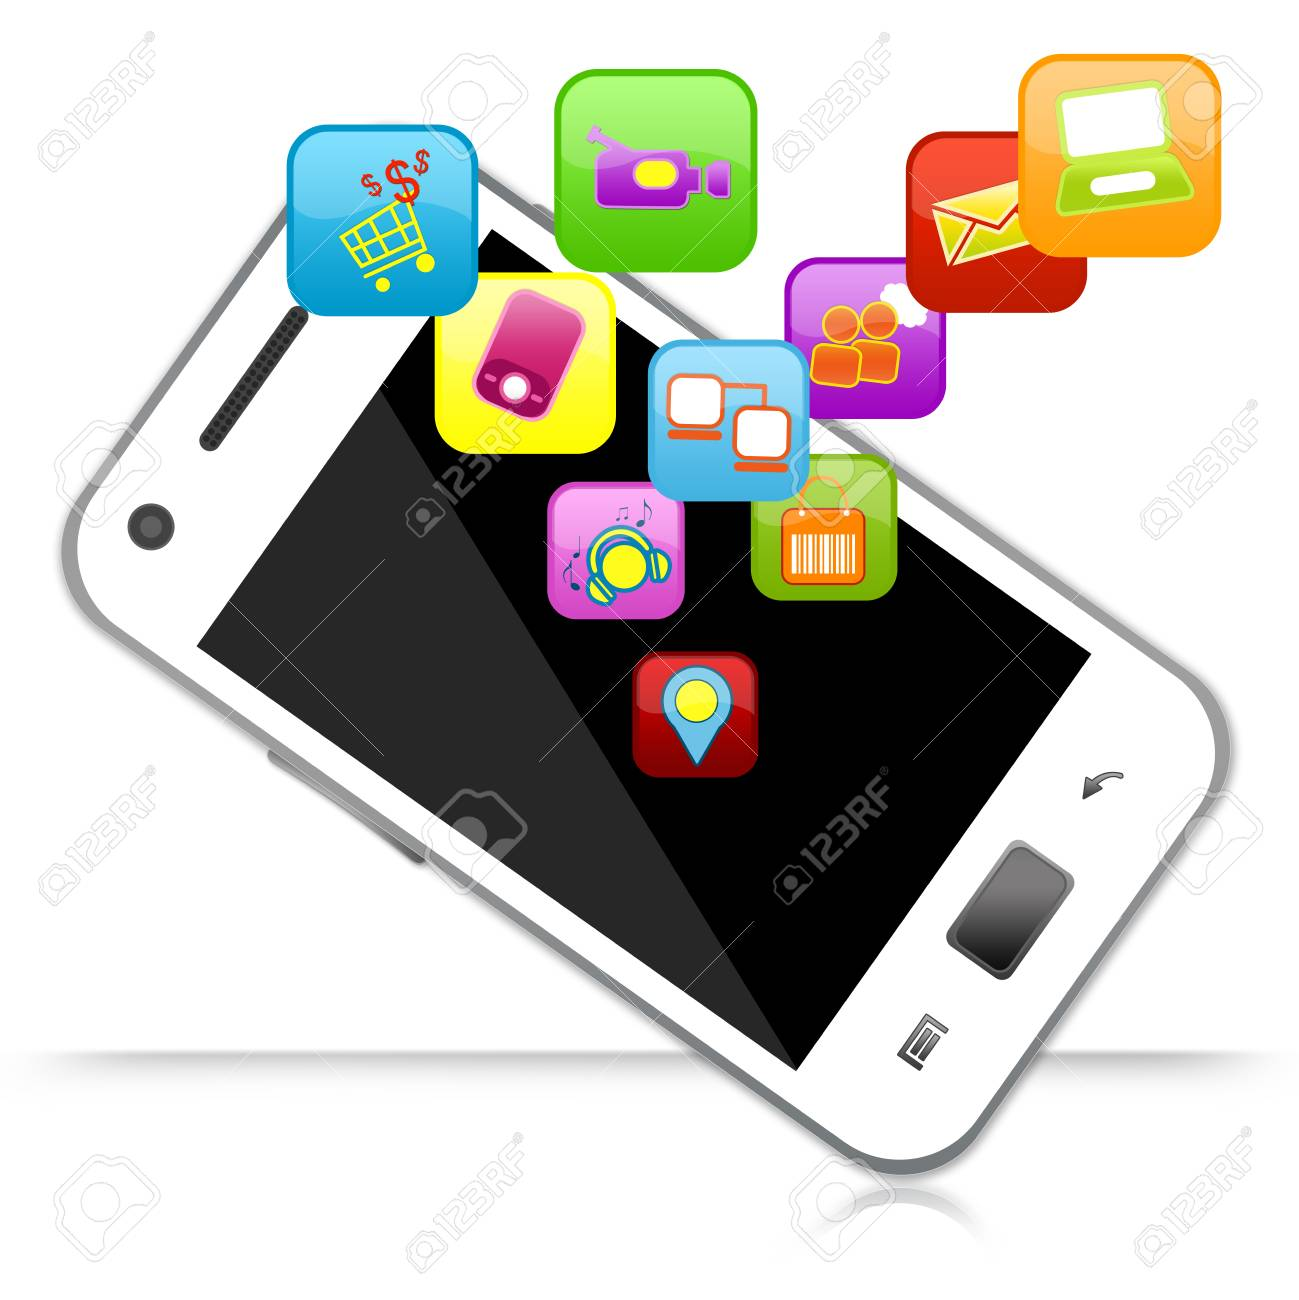 Smart Phone With Group of Colorful Social Icon for Social Network Concept Isolated on White Background Stock Photo - 17404265